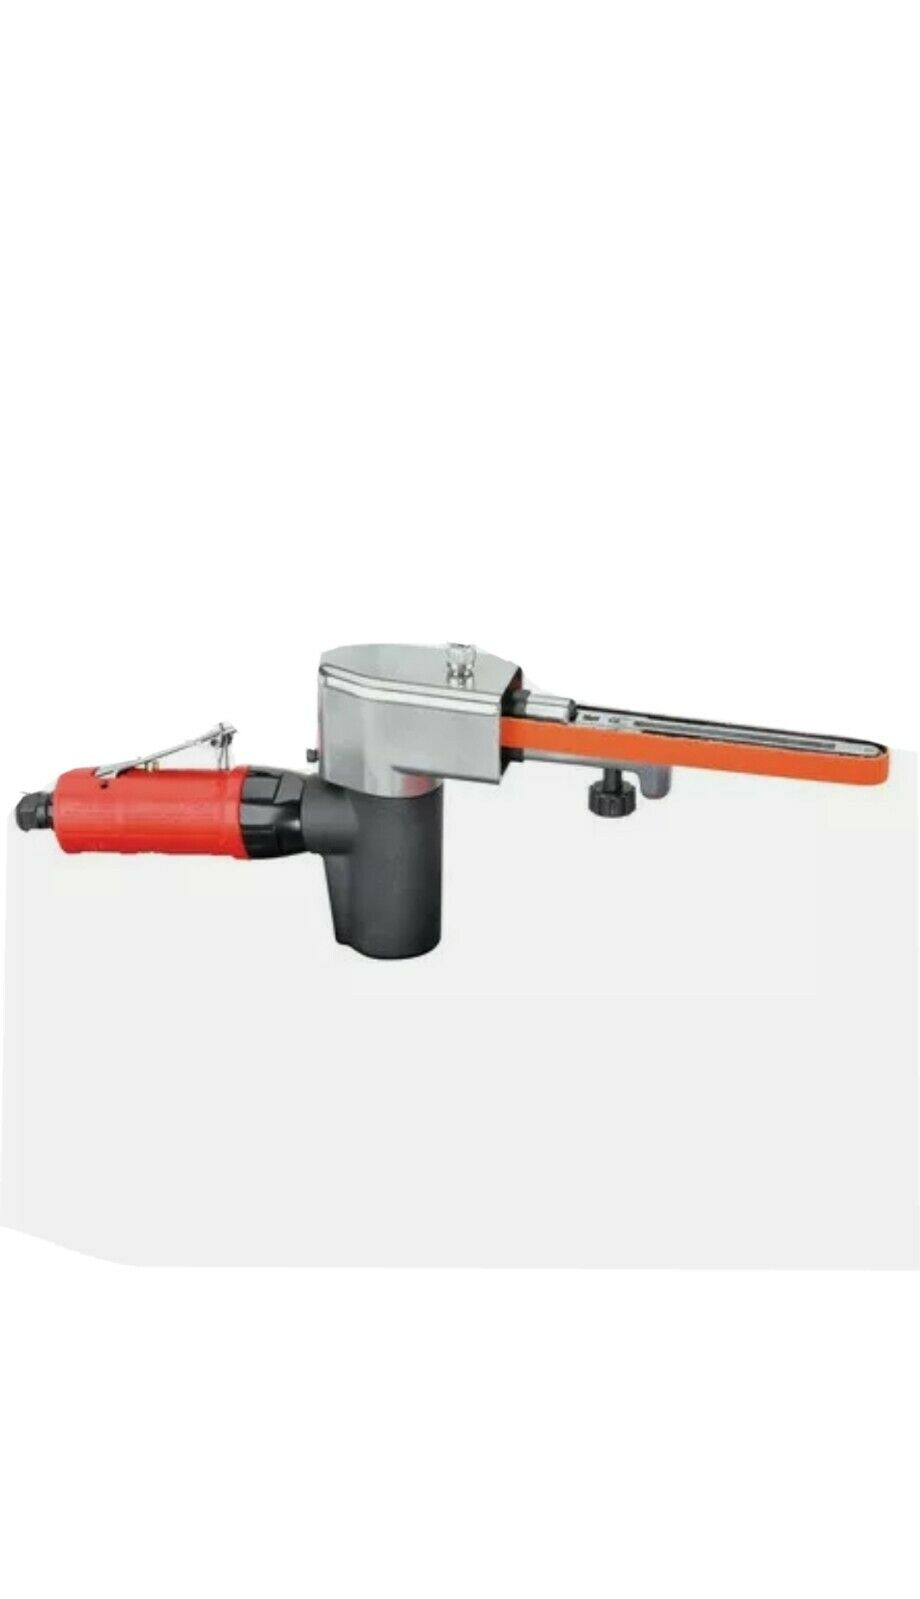 DYNABRADE 18100 Autobrade Red Abrasive Belt Tool. Buy it now for 300.95